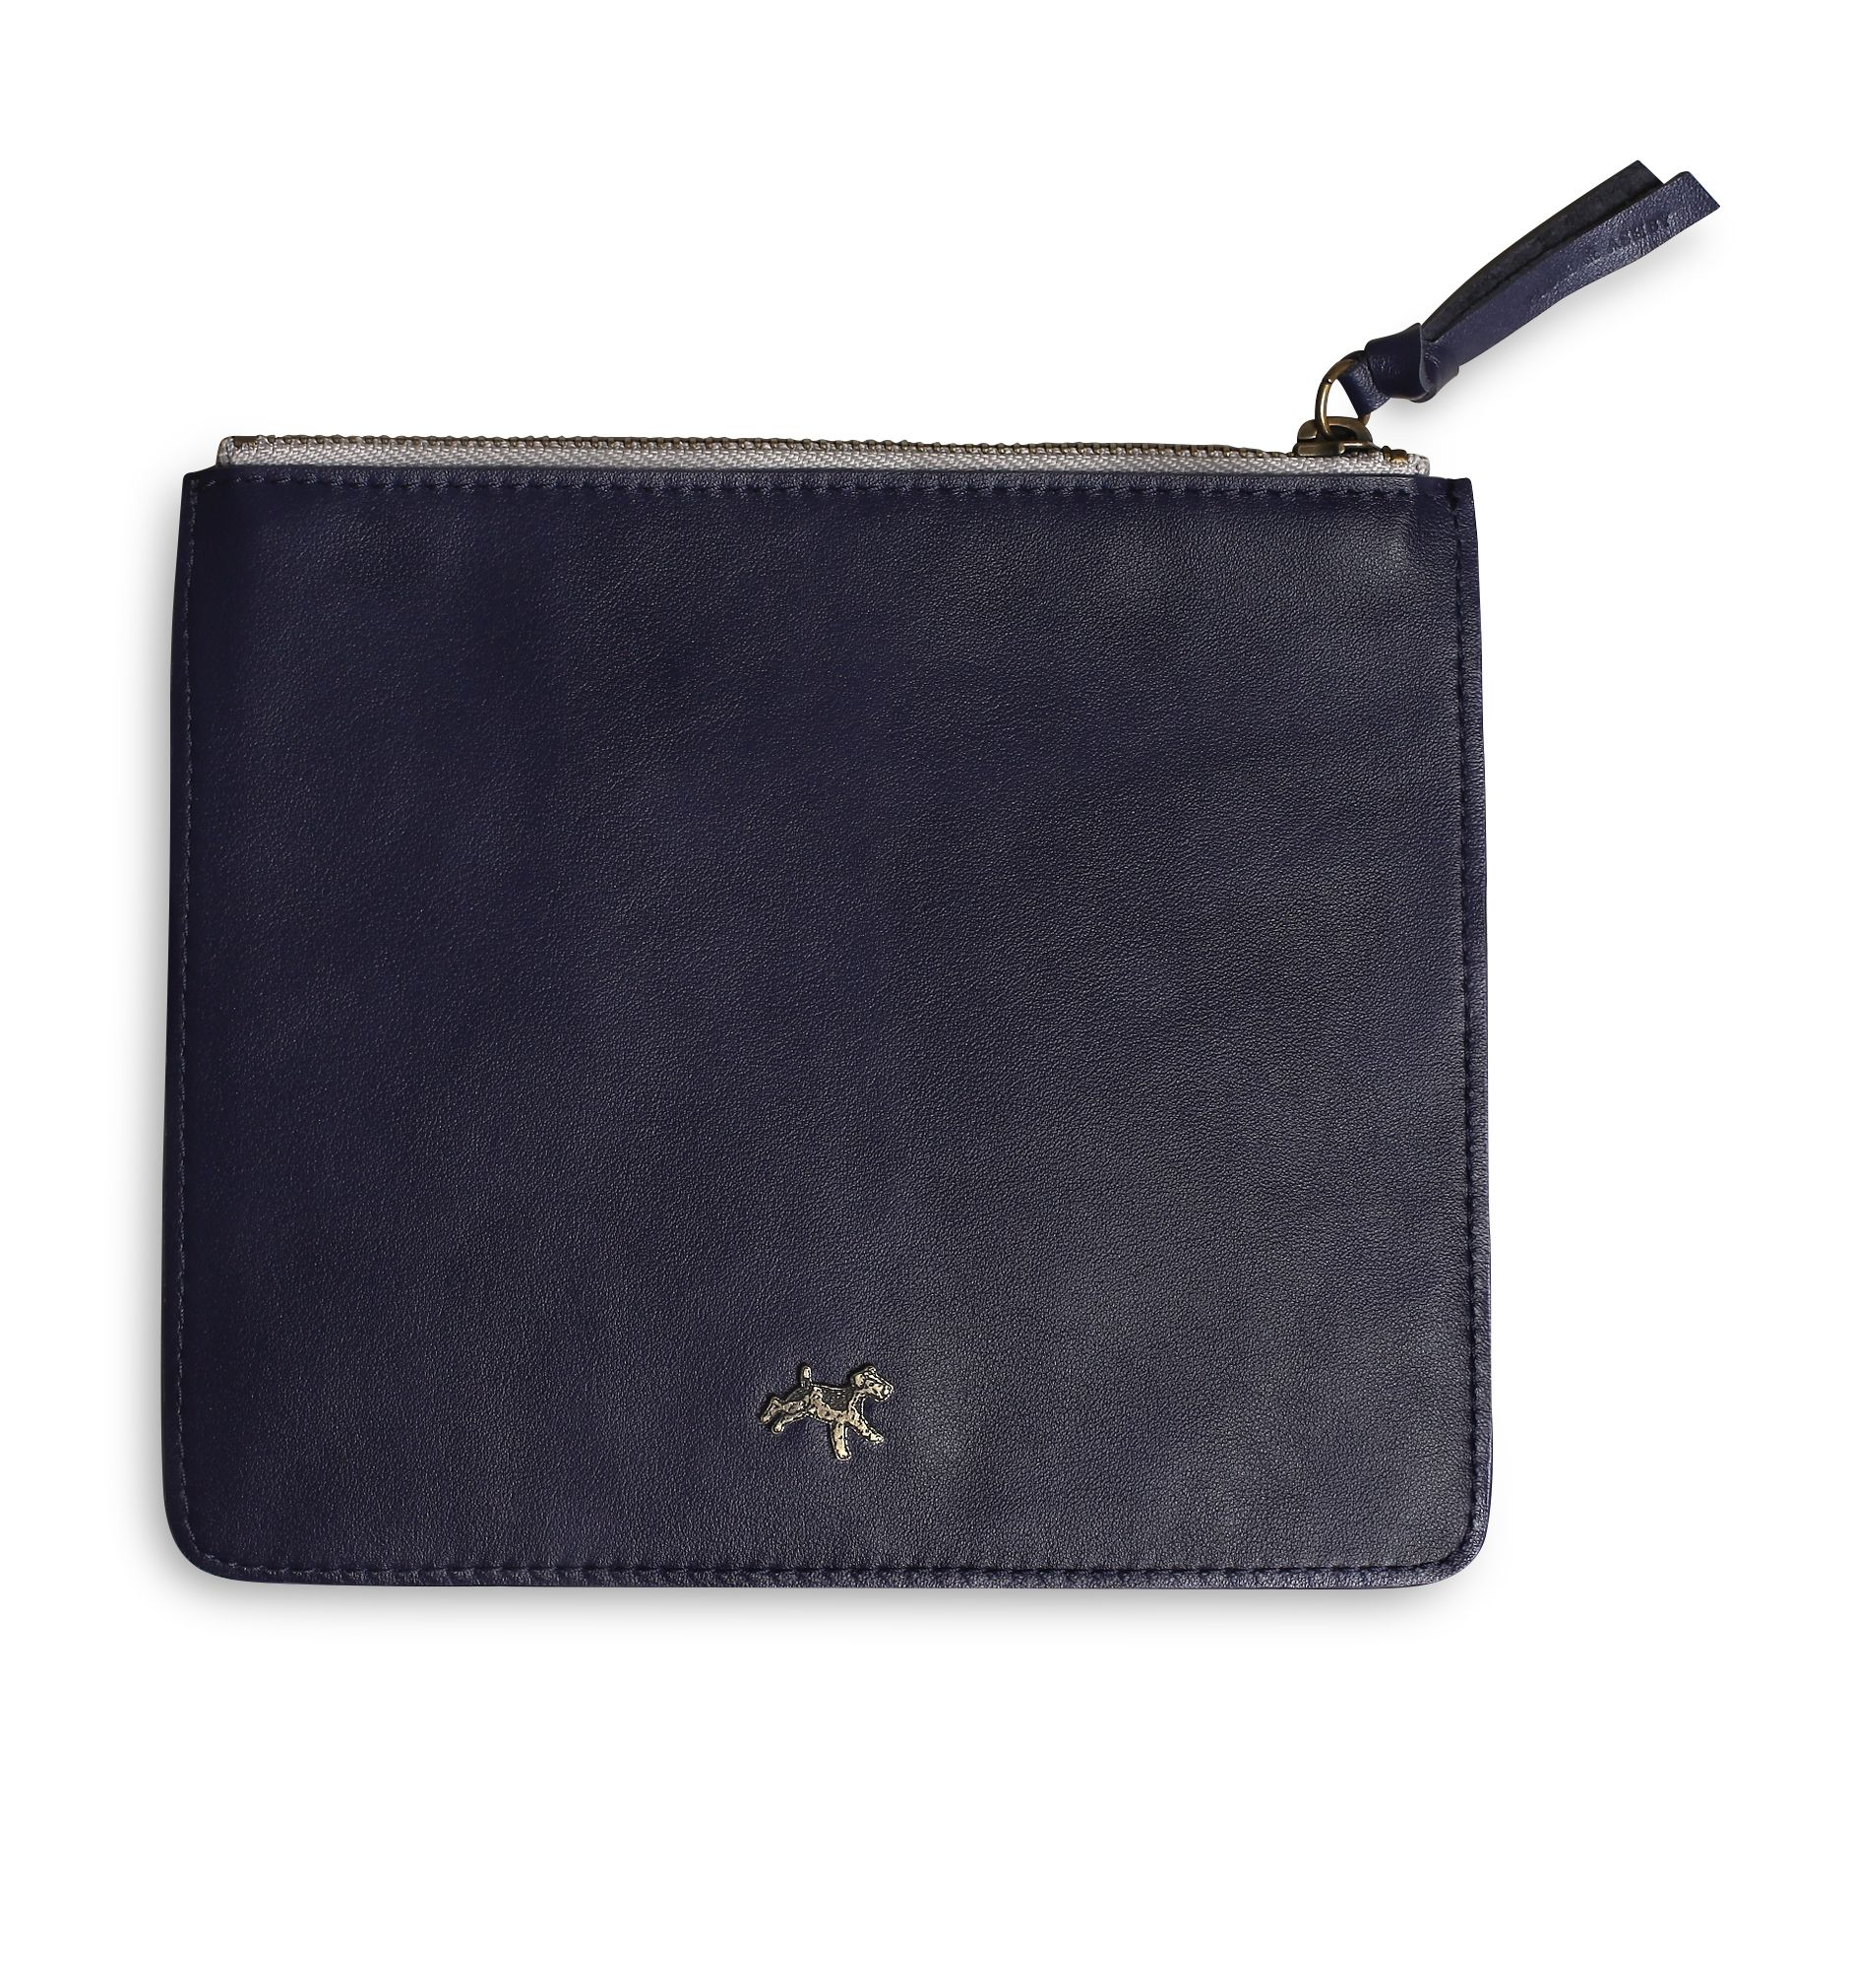 Leather zip pouch in navy